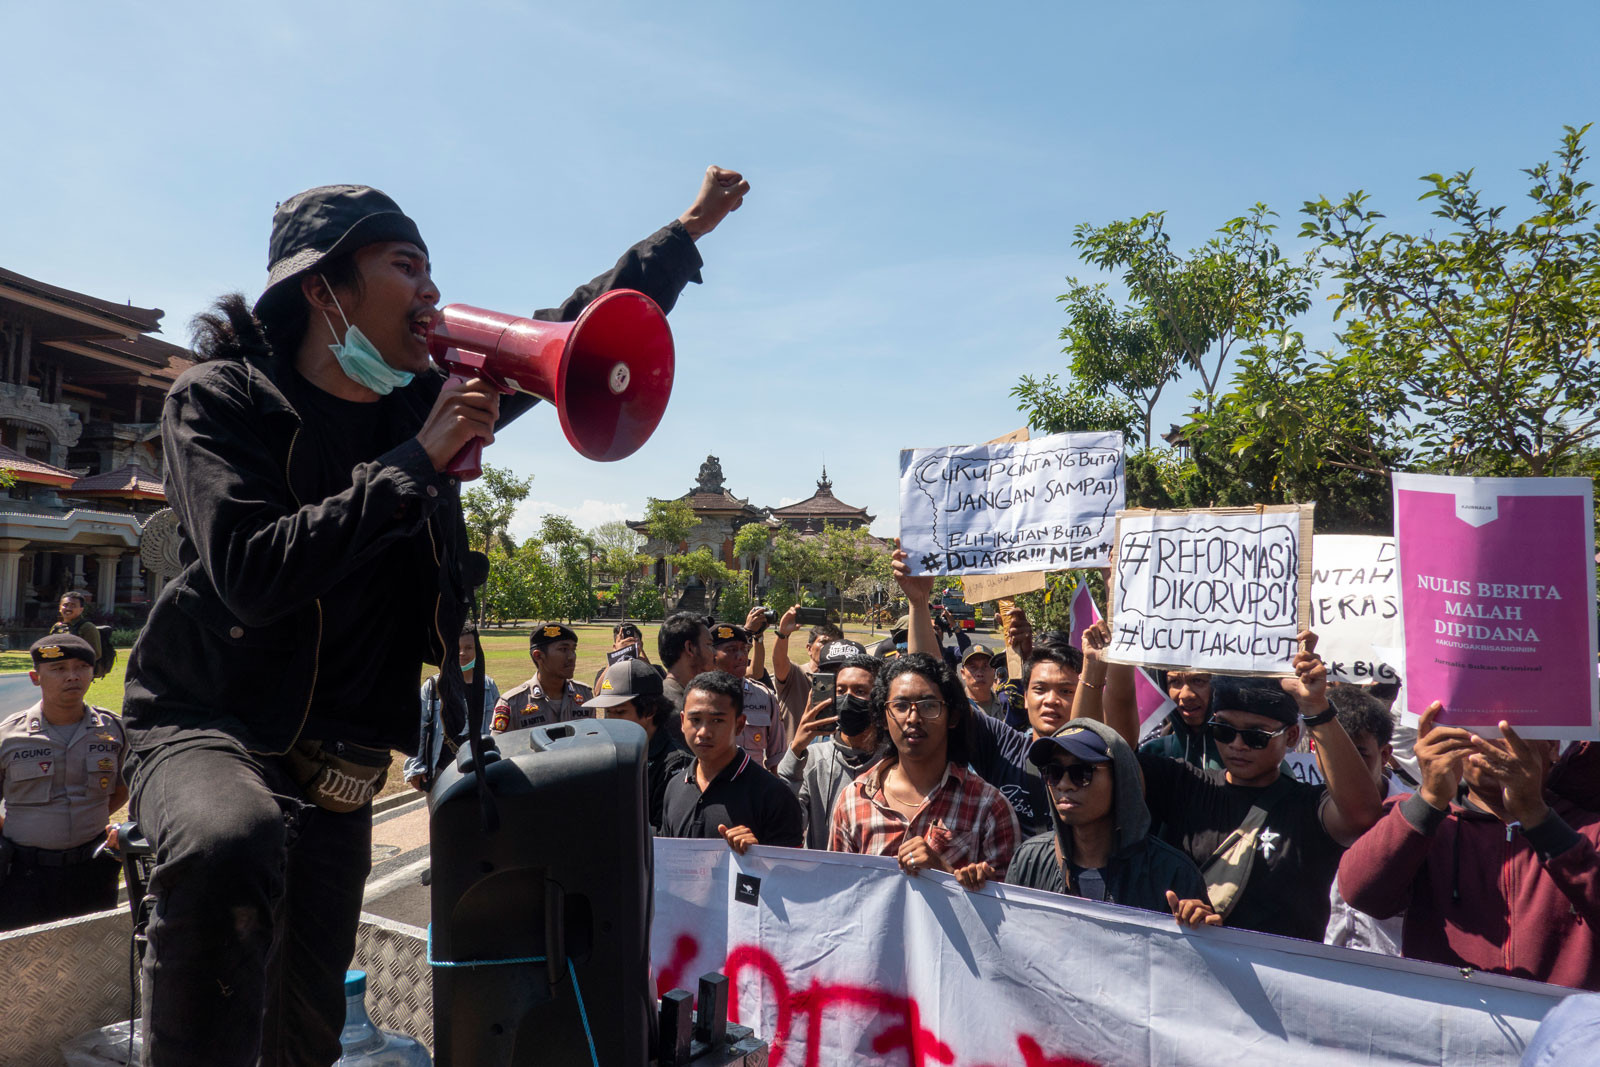 Indonesian students protesting in Denpasar, Bali, Indonesia on 24 September 2019. Photo: EPA-EFE/Made Nagi